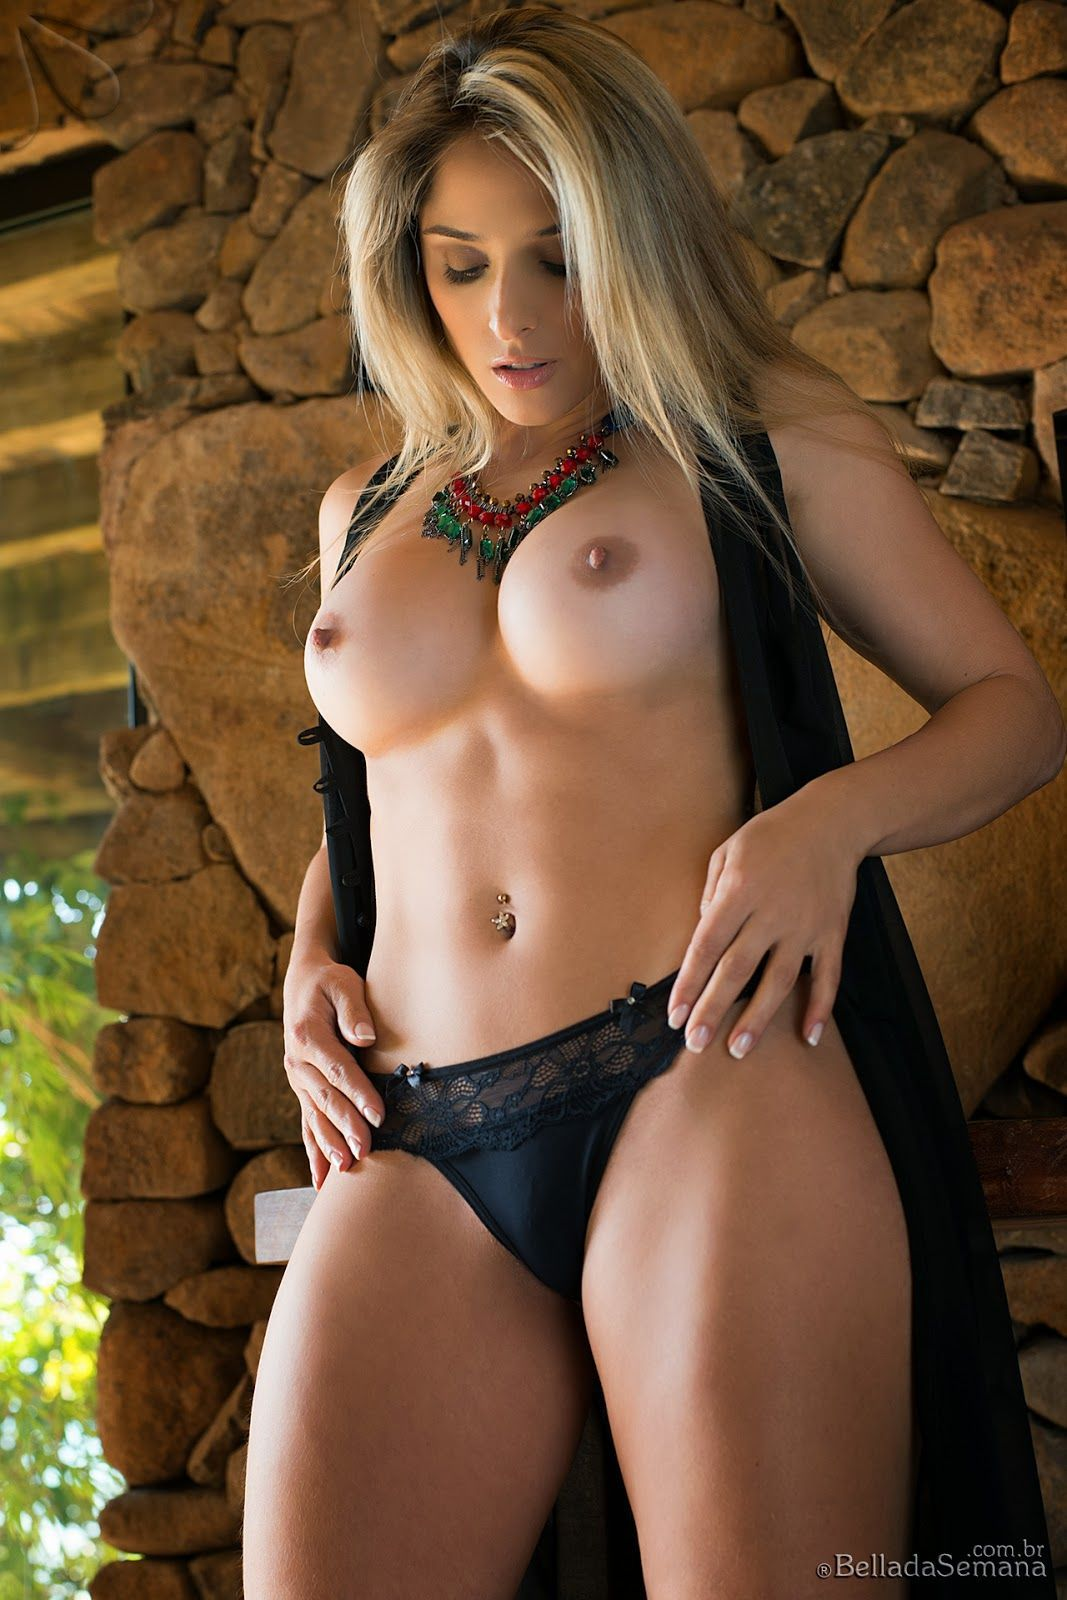 Free nude photos of mtvs real world females